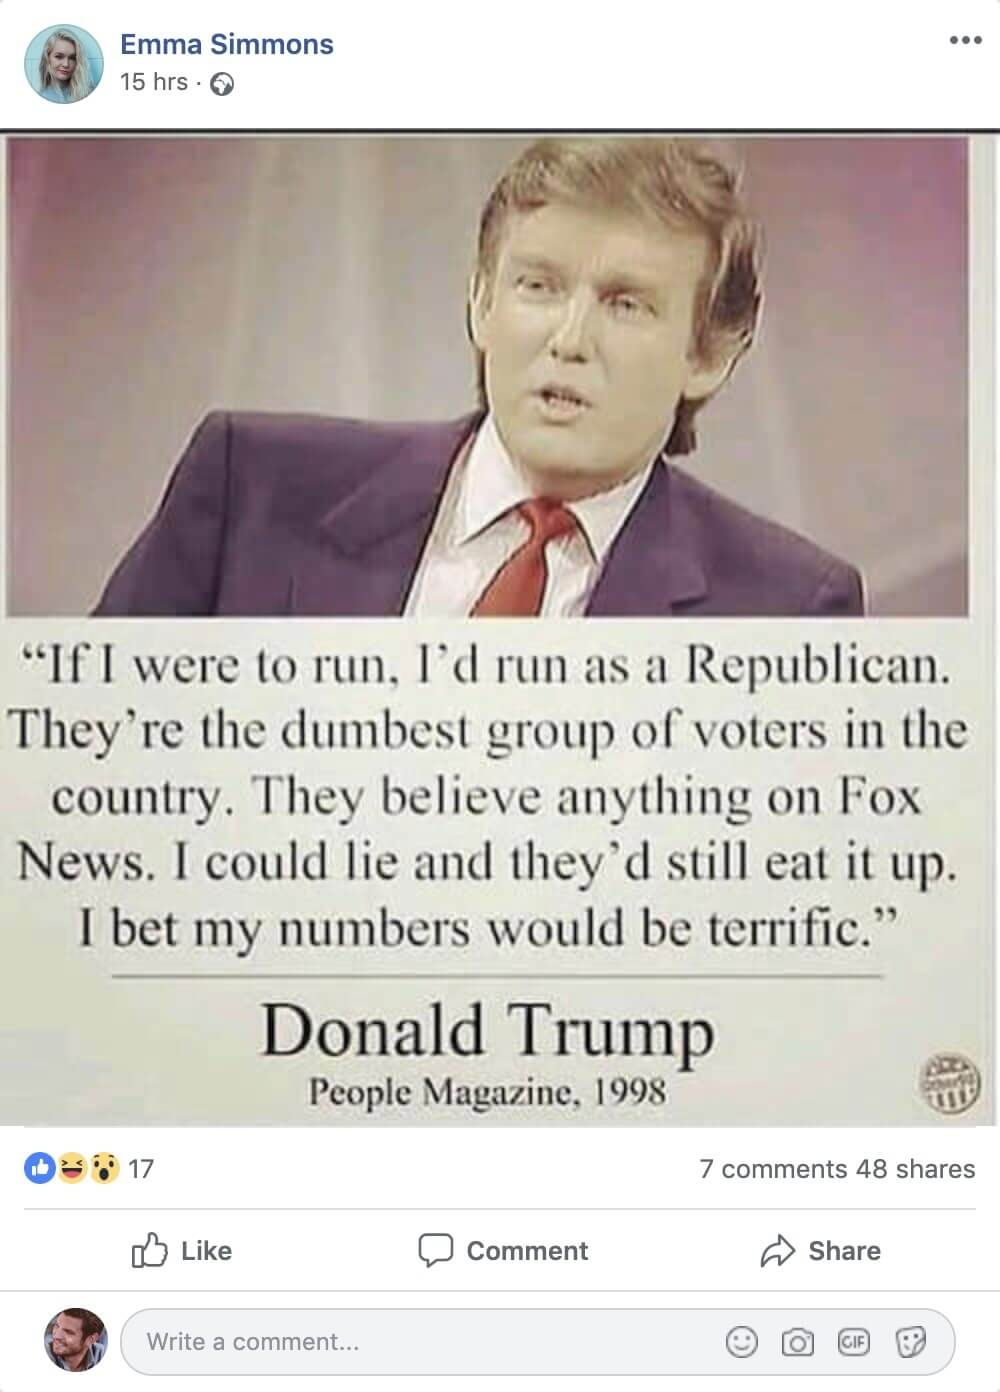 Donald Trump fake post